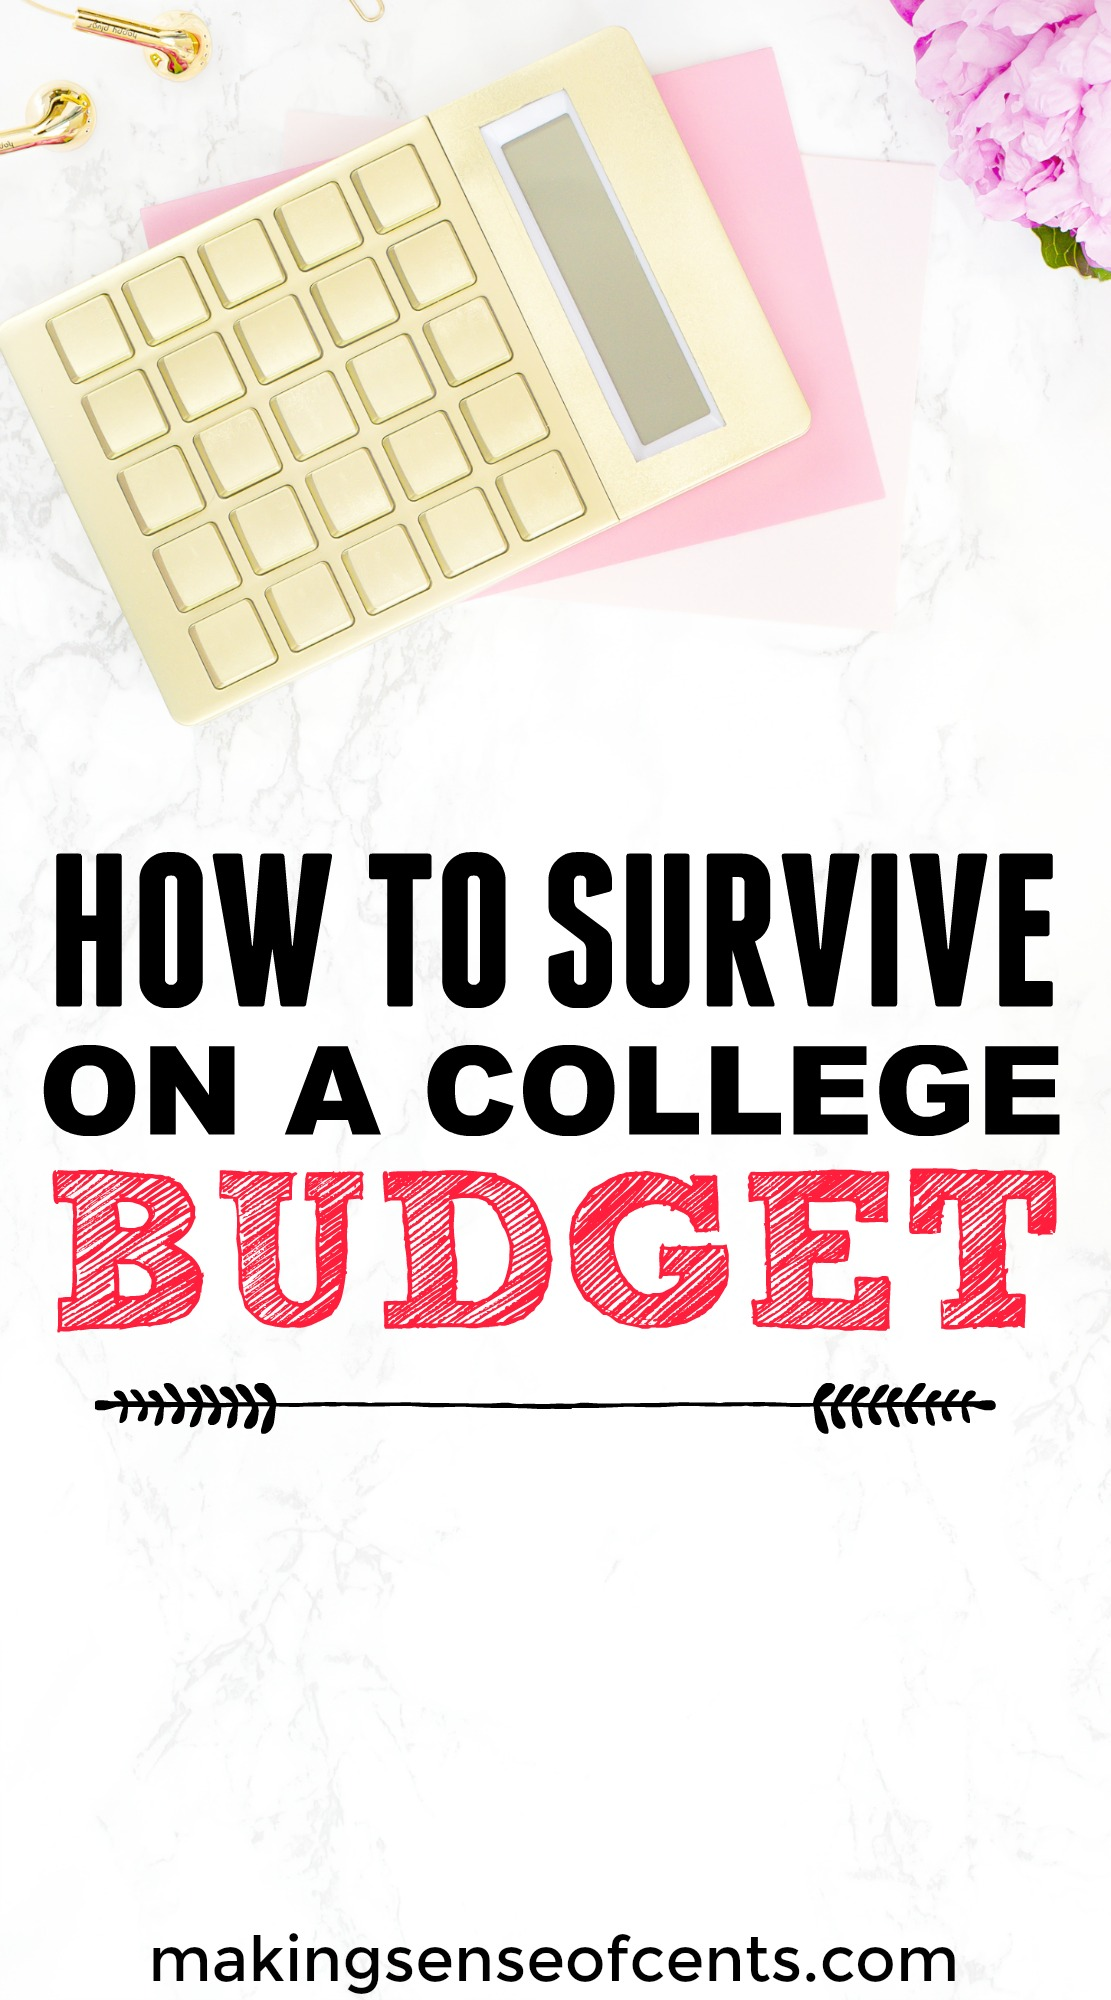 Find out how to survive on a college budget here. This is a great list!